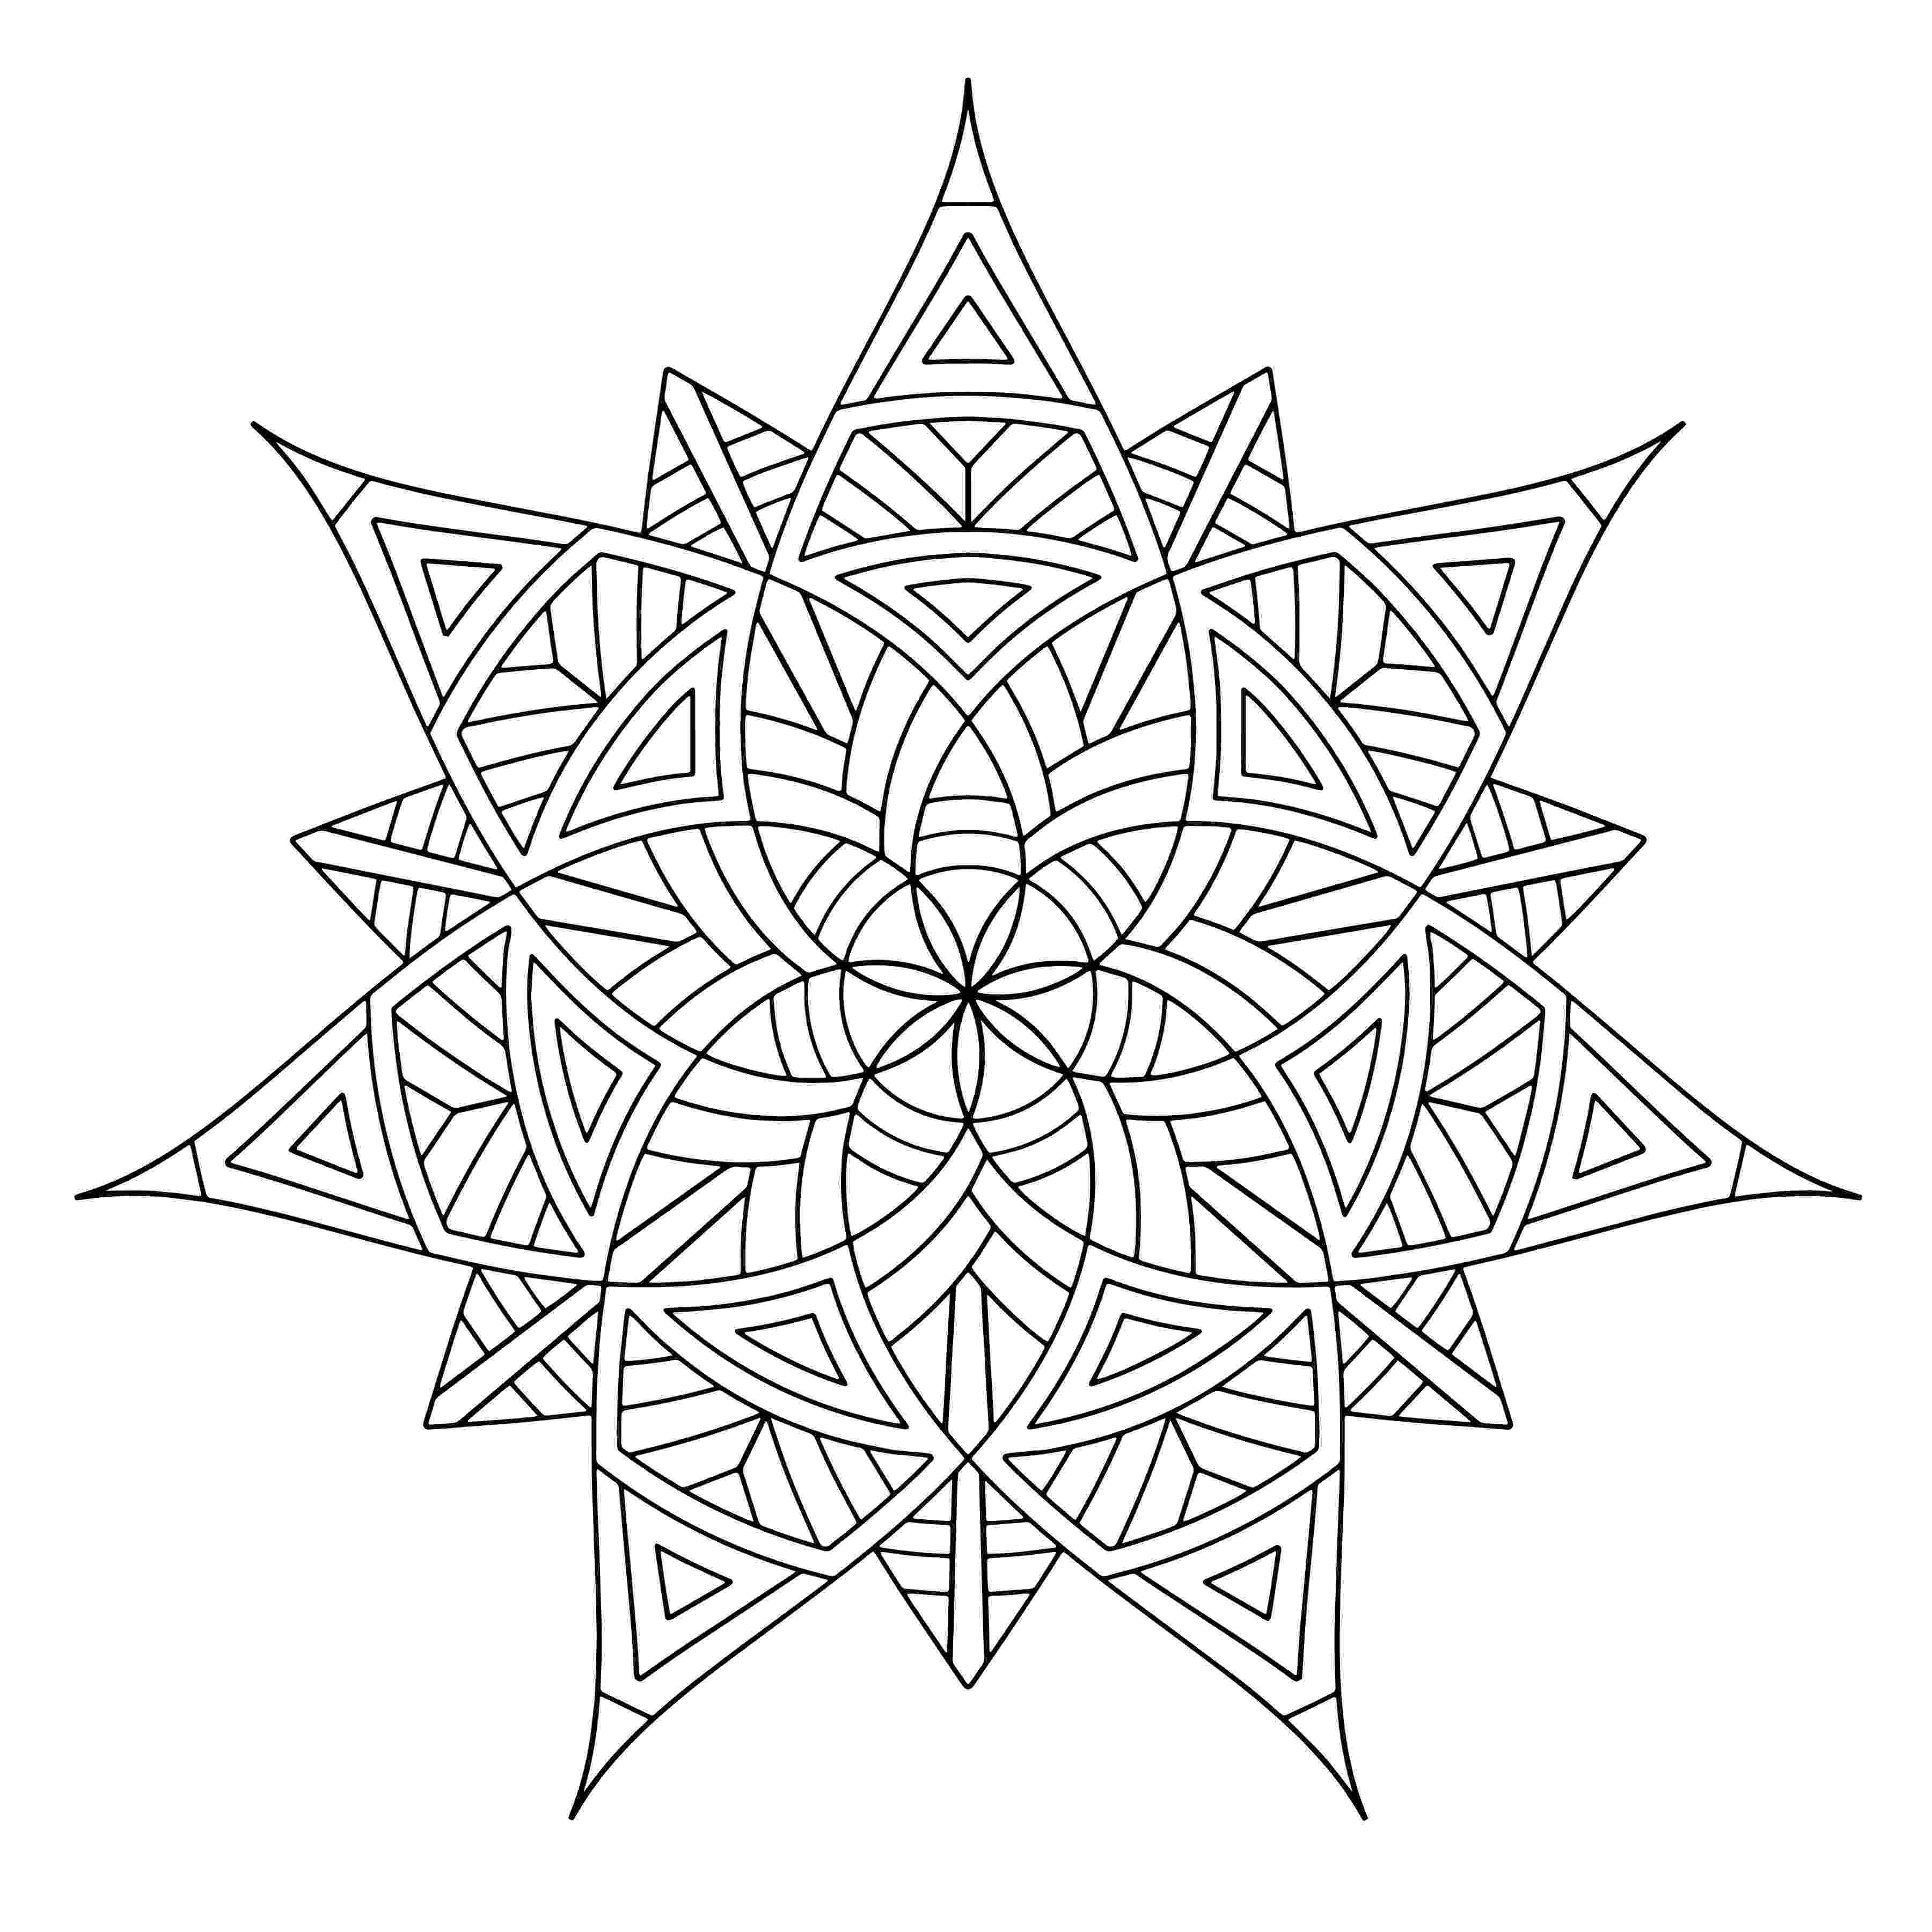 colouring sheets patterns free printable geometric coloring pages for adults colouring patterns sheets